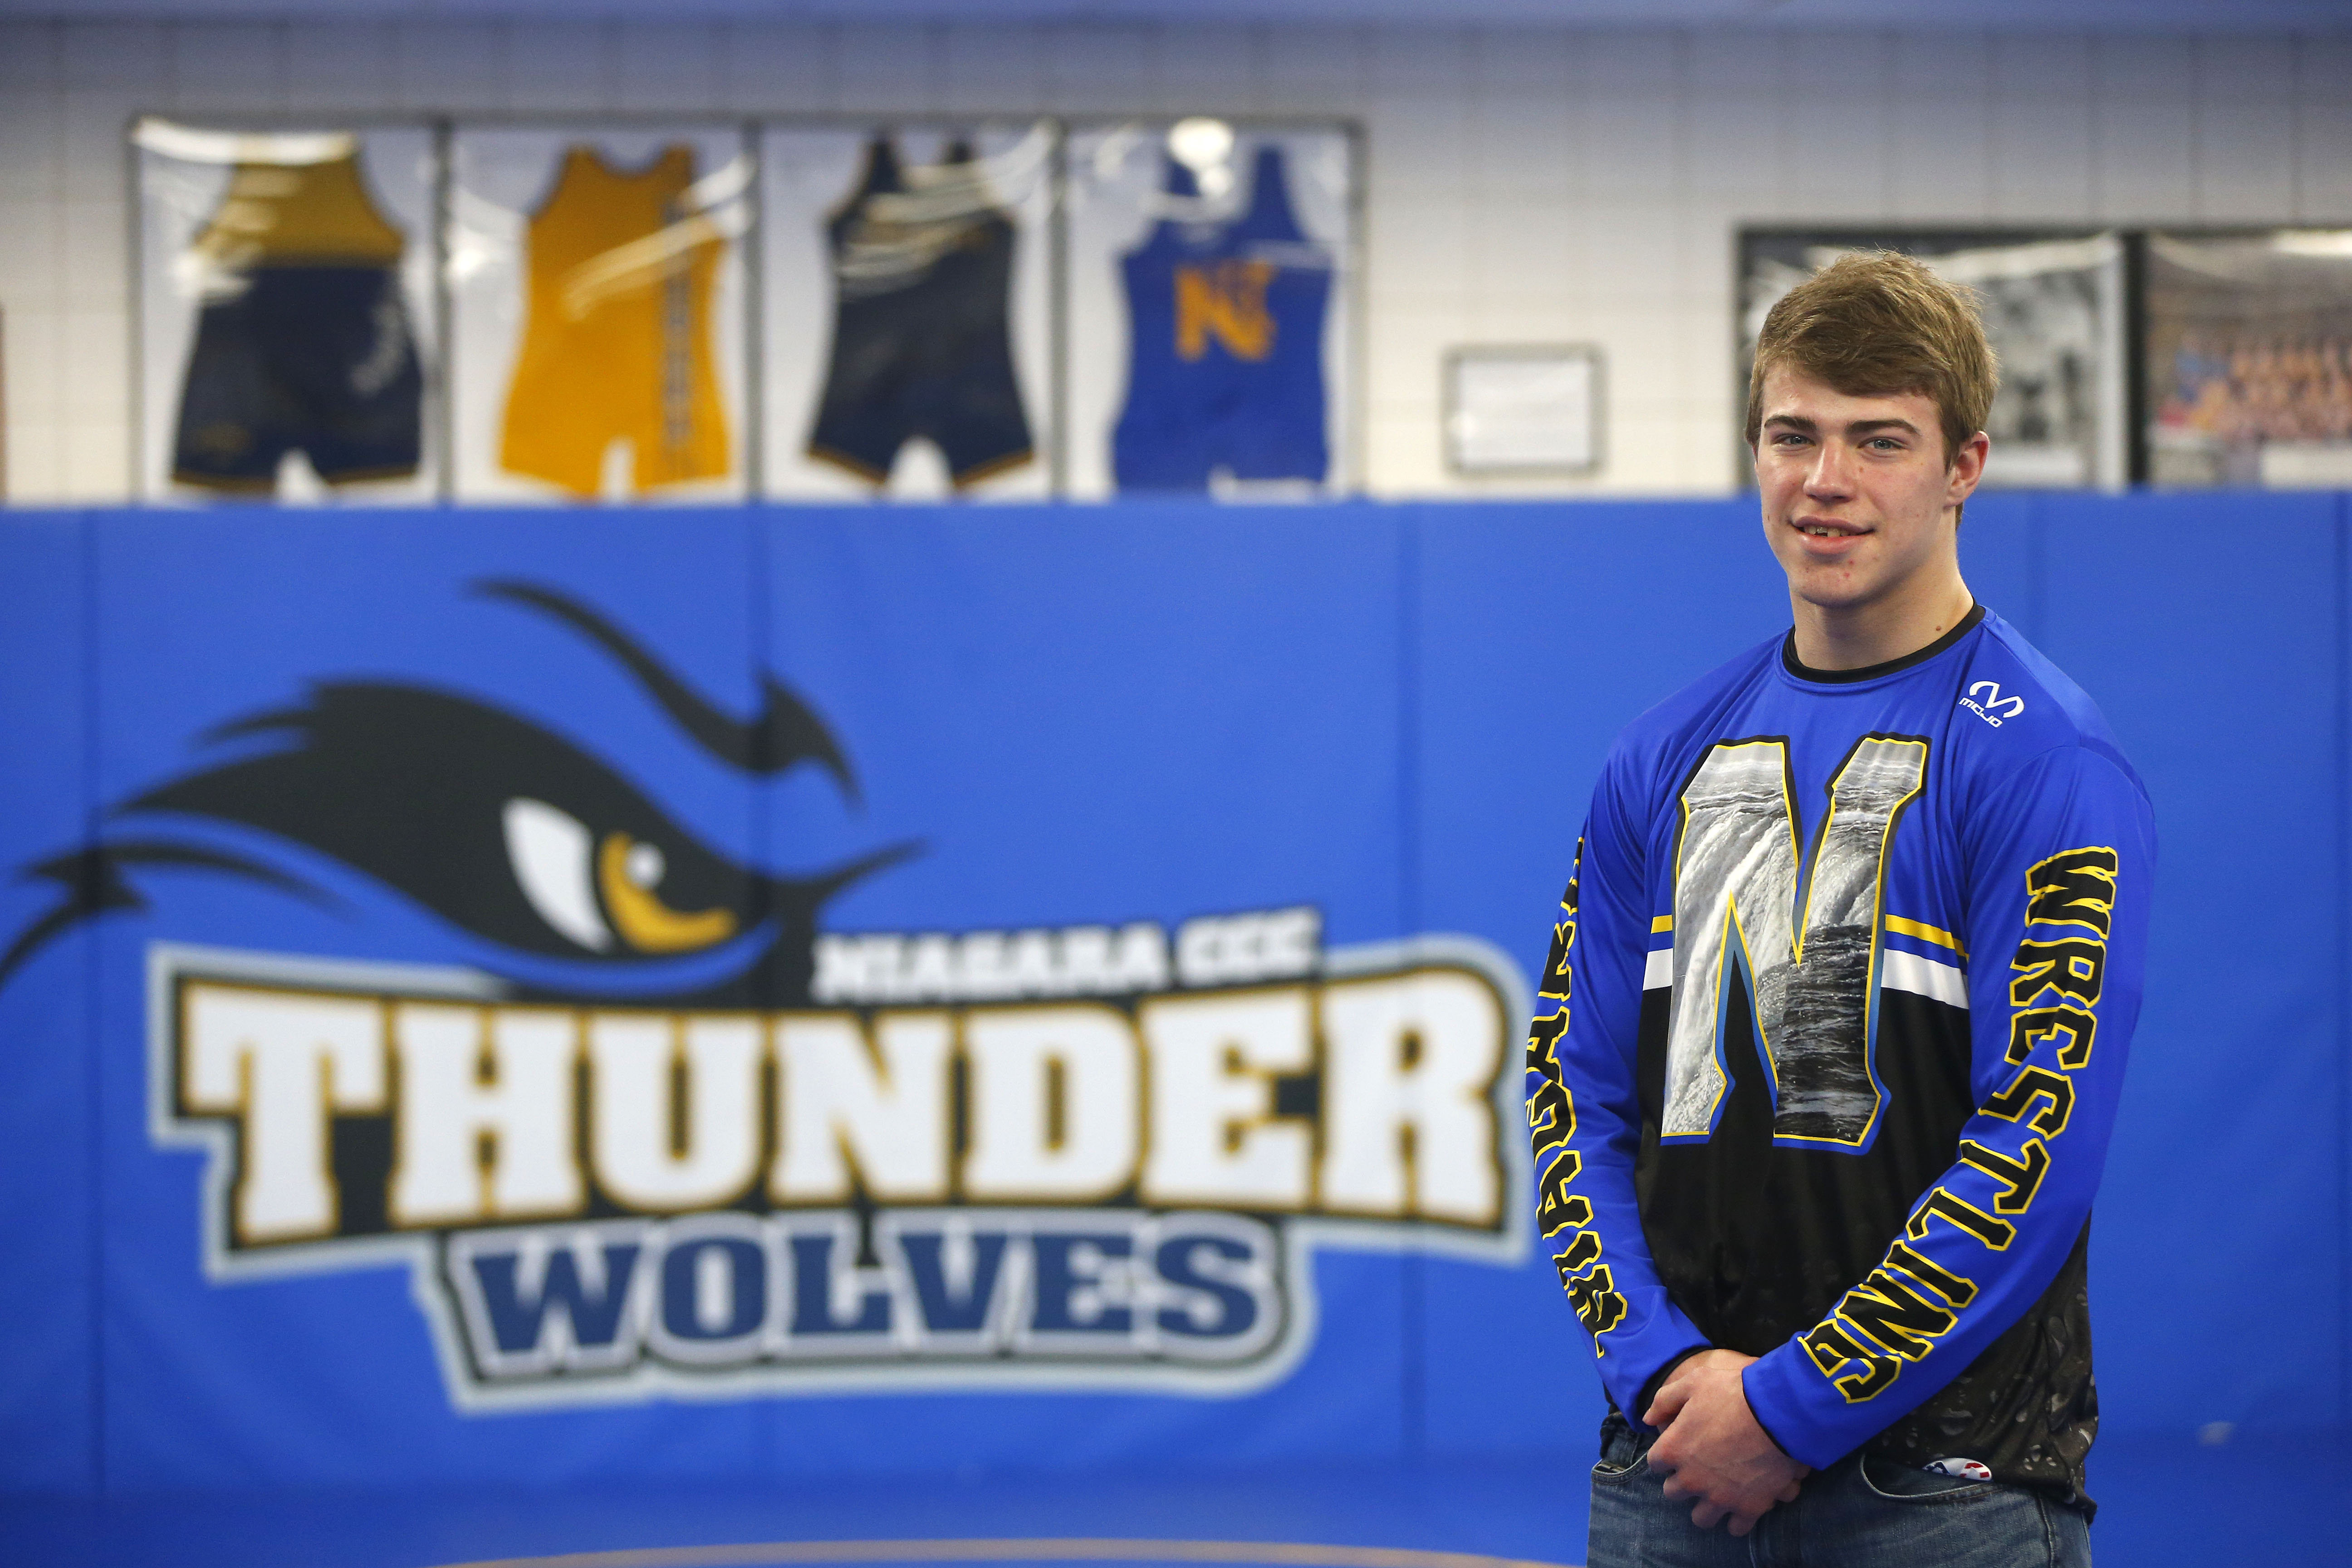 NCCC wrestler Troy Keller took fifth place at the NJCAA National Championships on Feb. 24-25. He became the 46th wrestler at the school to earn All-American honors (Mark Mulville/Buffalo News)